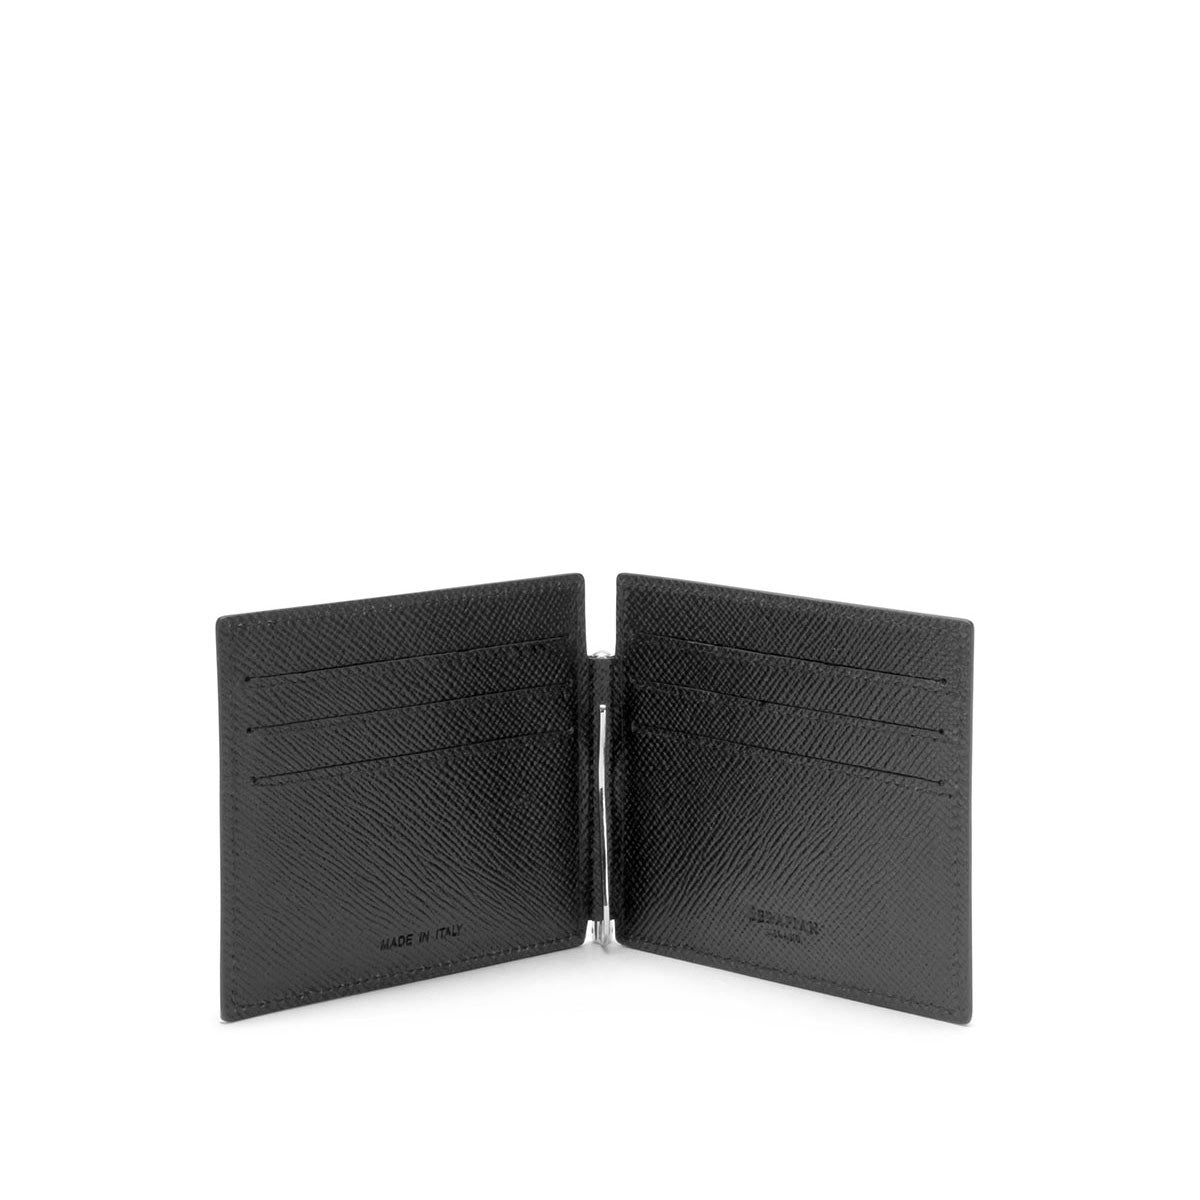 Billfold 6 cc Evolution and Clip - Black